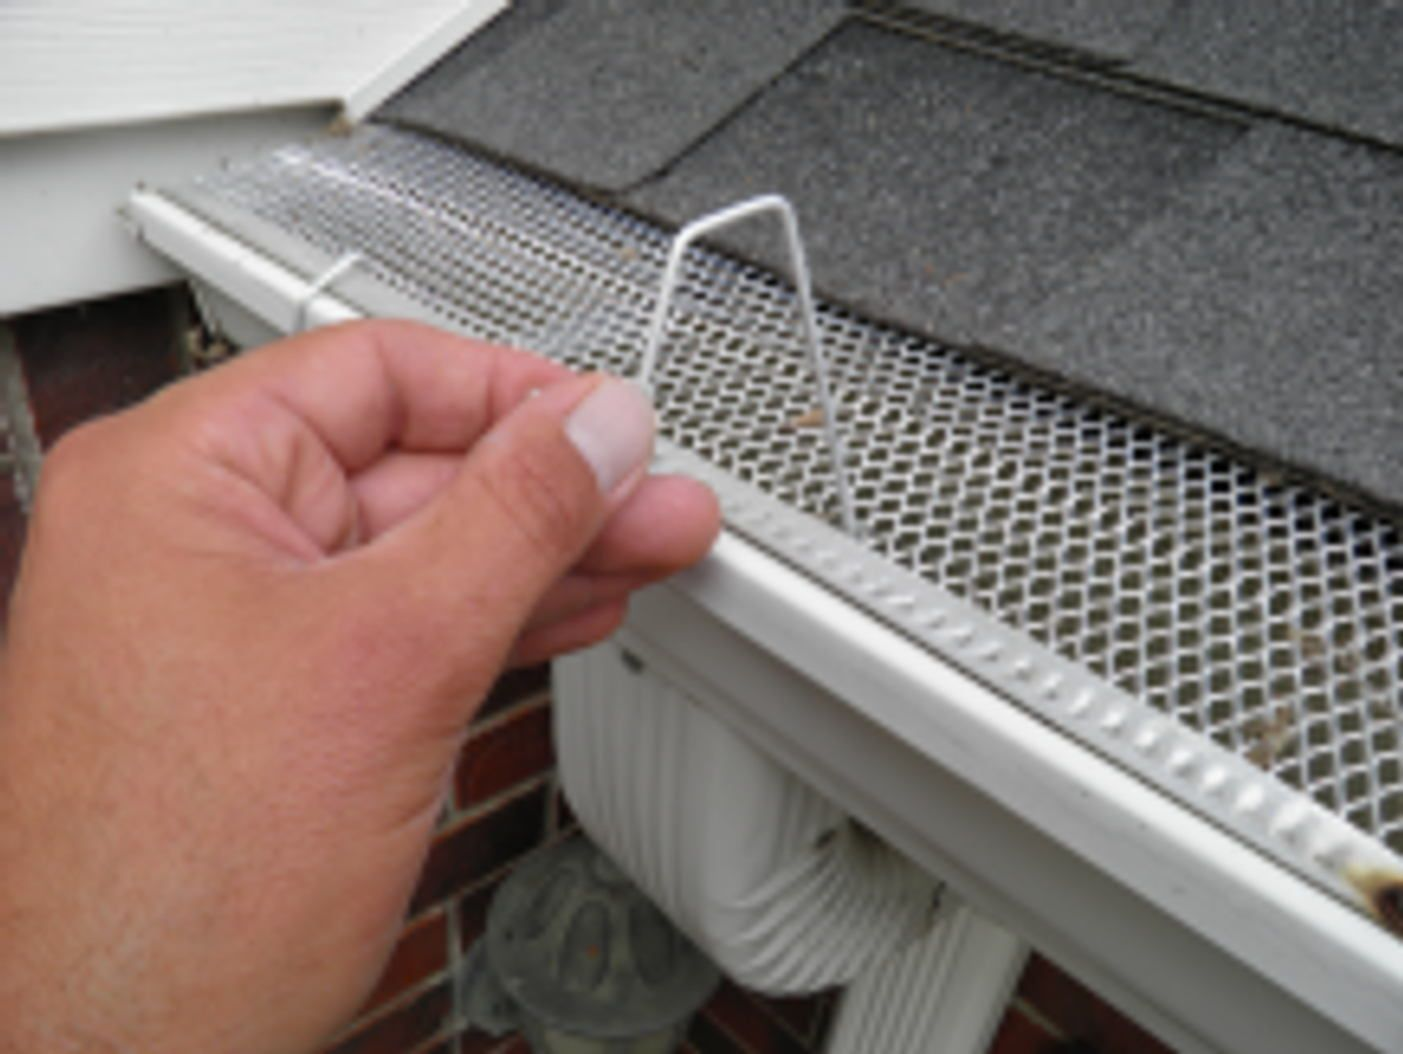 Christmas Light Hangers For Gutters With Mesh Or Perforated Gutter Guard Www Christmashook Com Ch Light Hanger Christmas Light Hooks Christmas Light Hangers